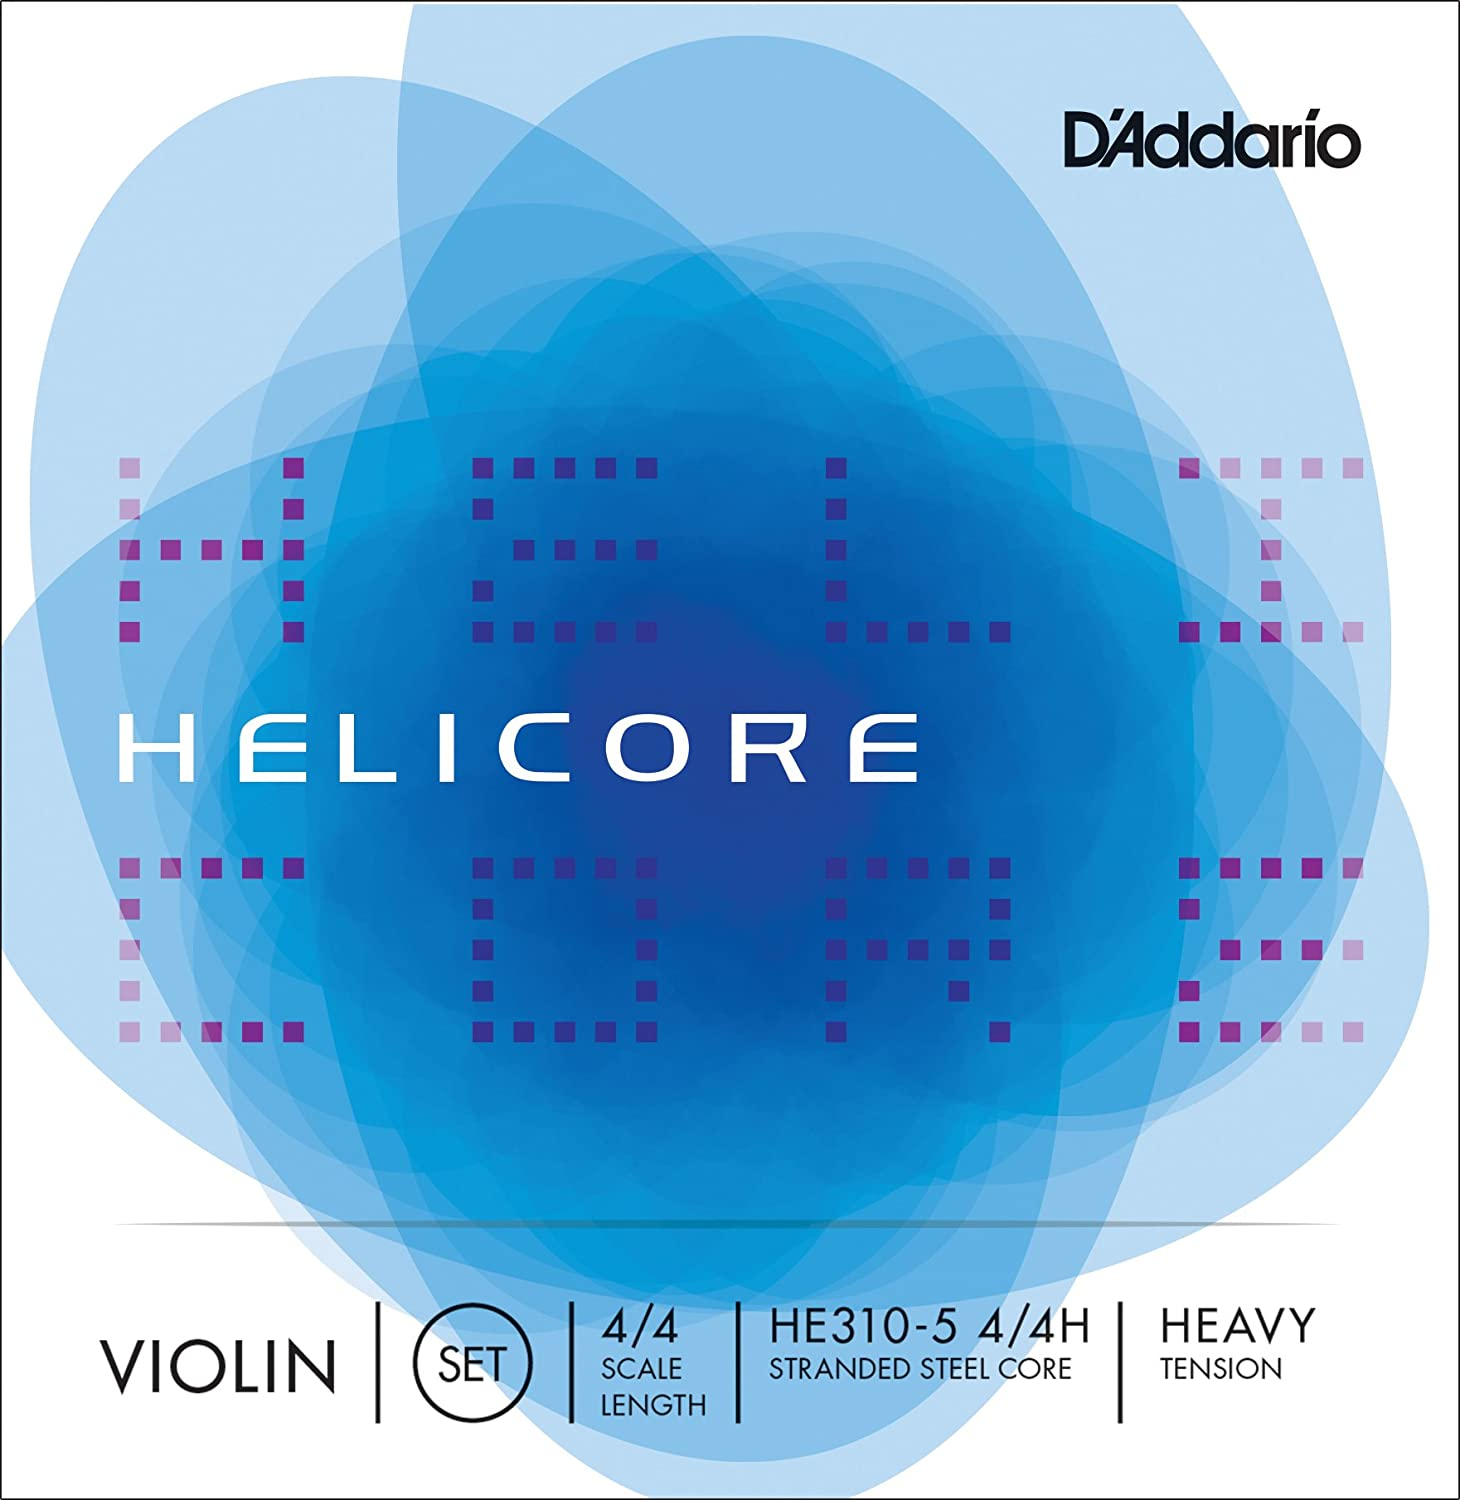 D'Addario Helicore Violin 5-String Set, 4/4 Scale, Heavy Tension D' Addario HE310-5 4/4H